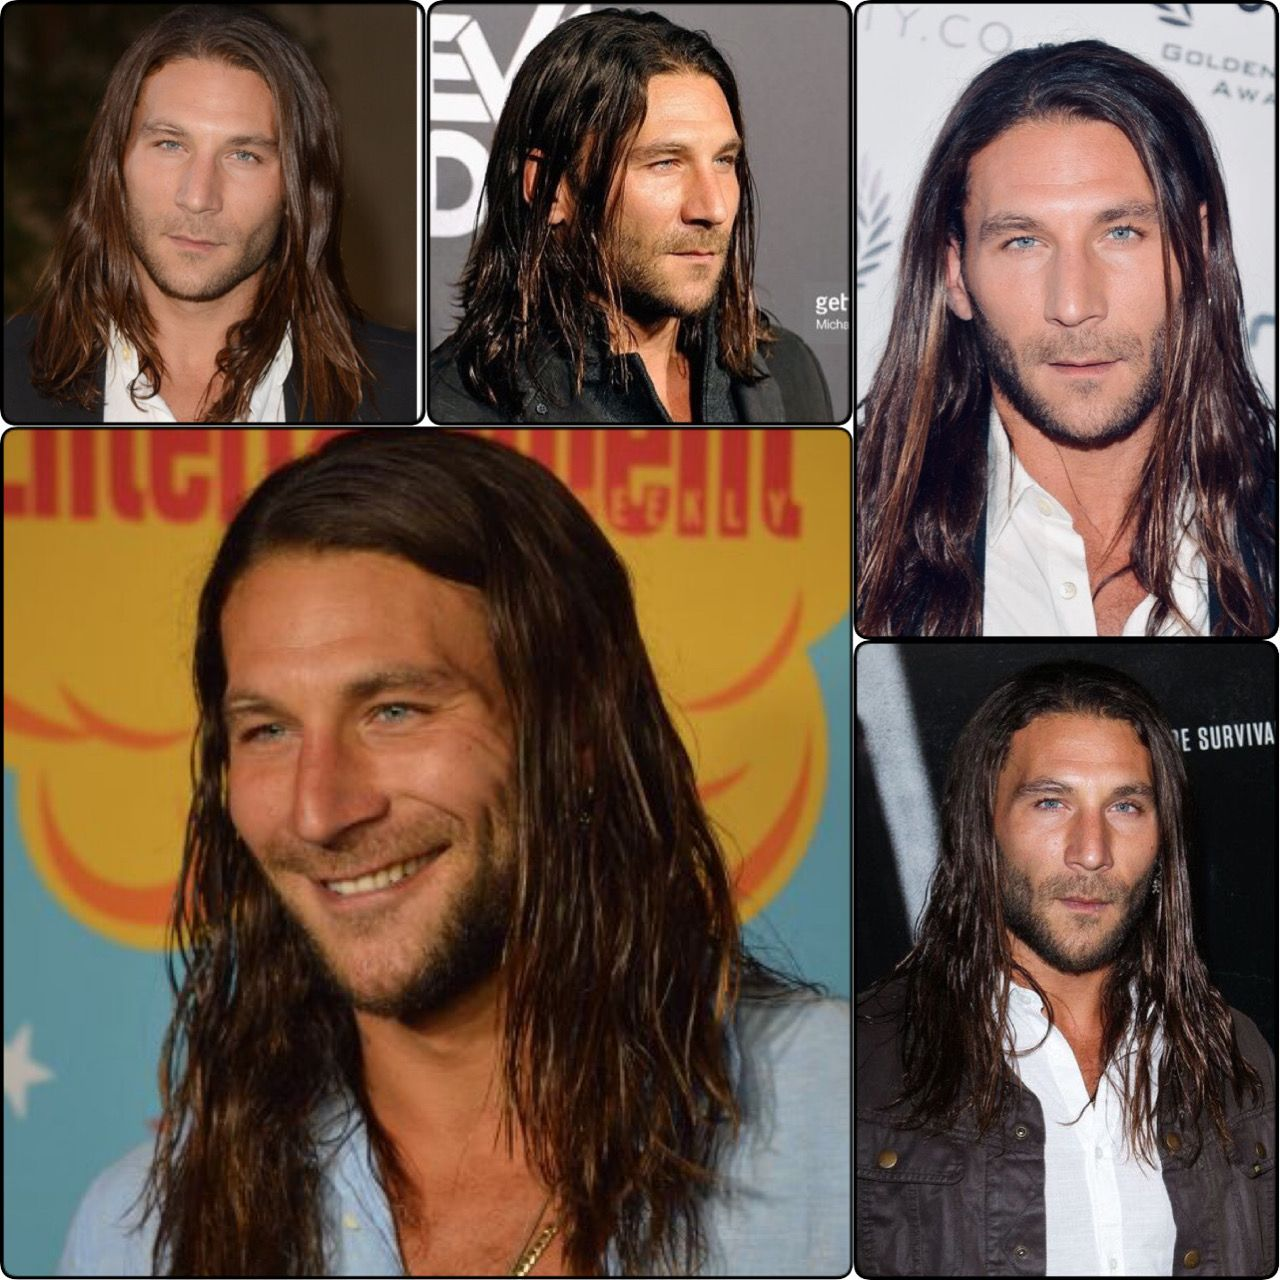 Pin on TV Shows & Movies Zach McGowan